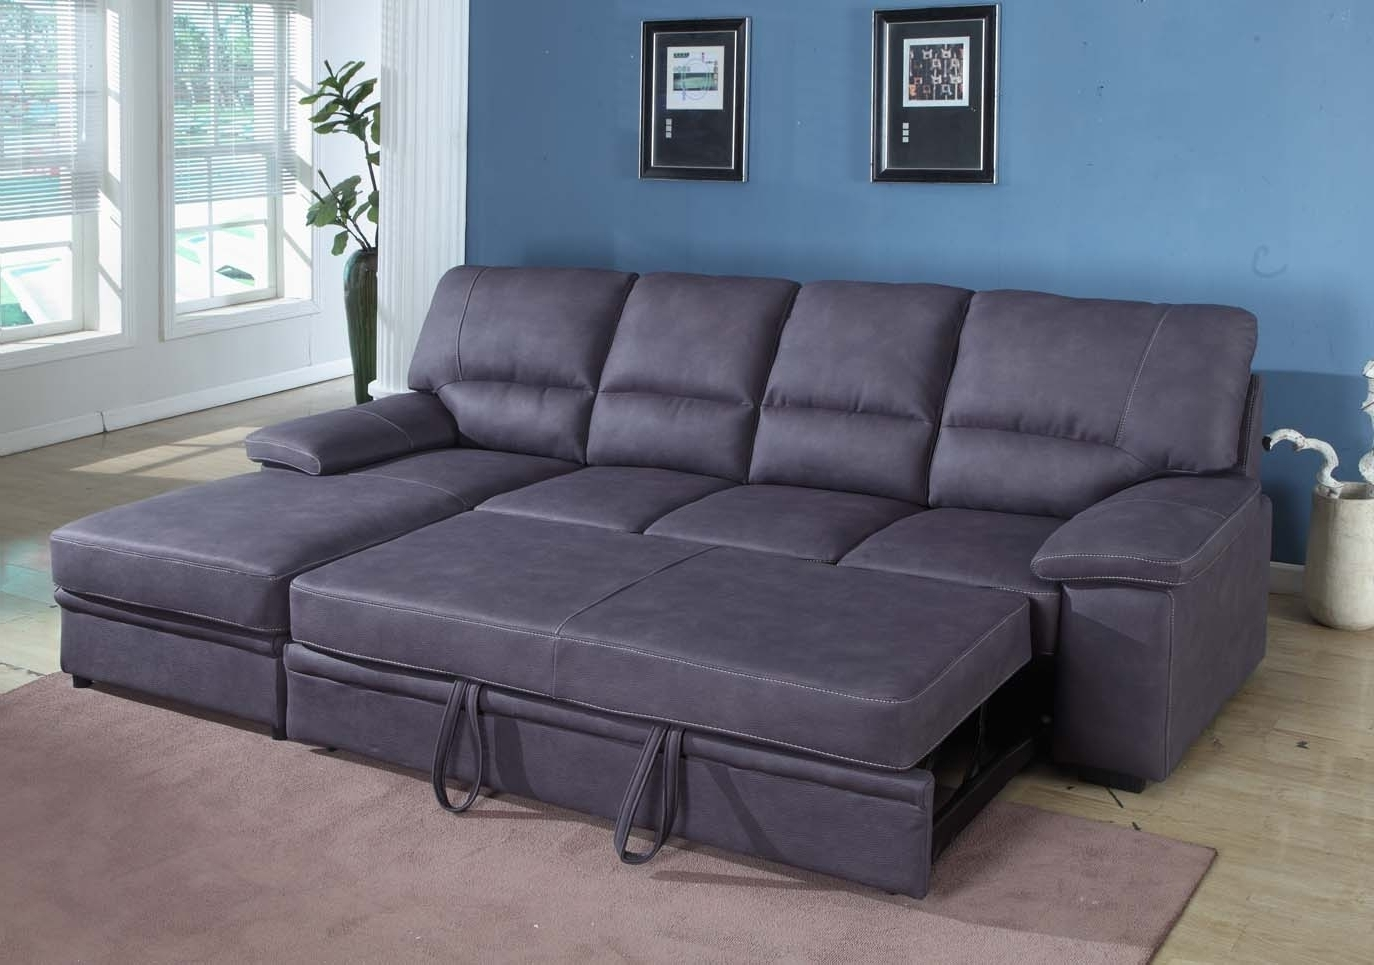 Sofas With Chaise And Ottoman With Regard To 2019 Ottoman Sleeper Sofa, Make A Chaise With Storage Ottoman Chaise (View 18 of 20)